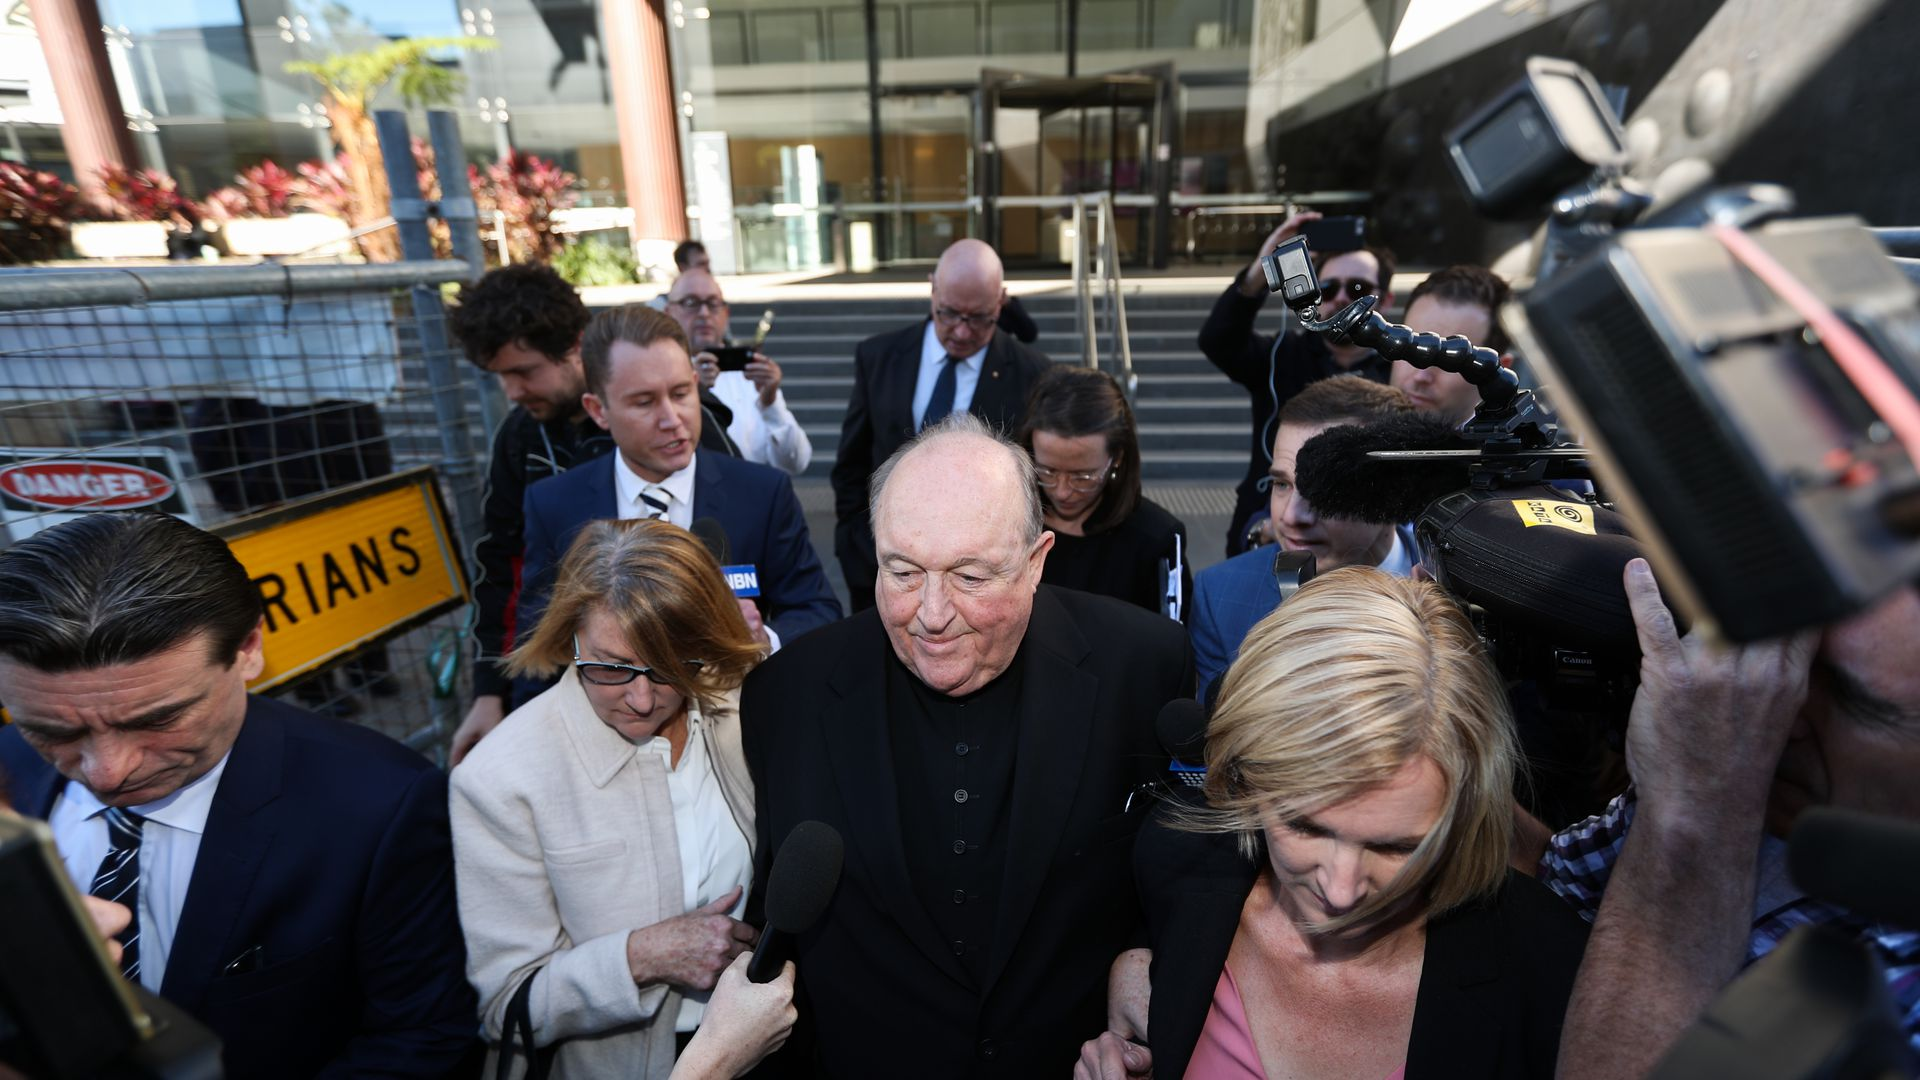 Archbishop Philip Wilson leaving courthouse